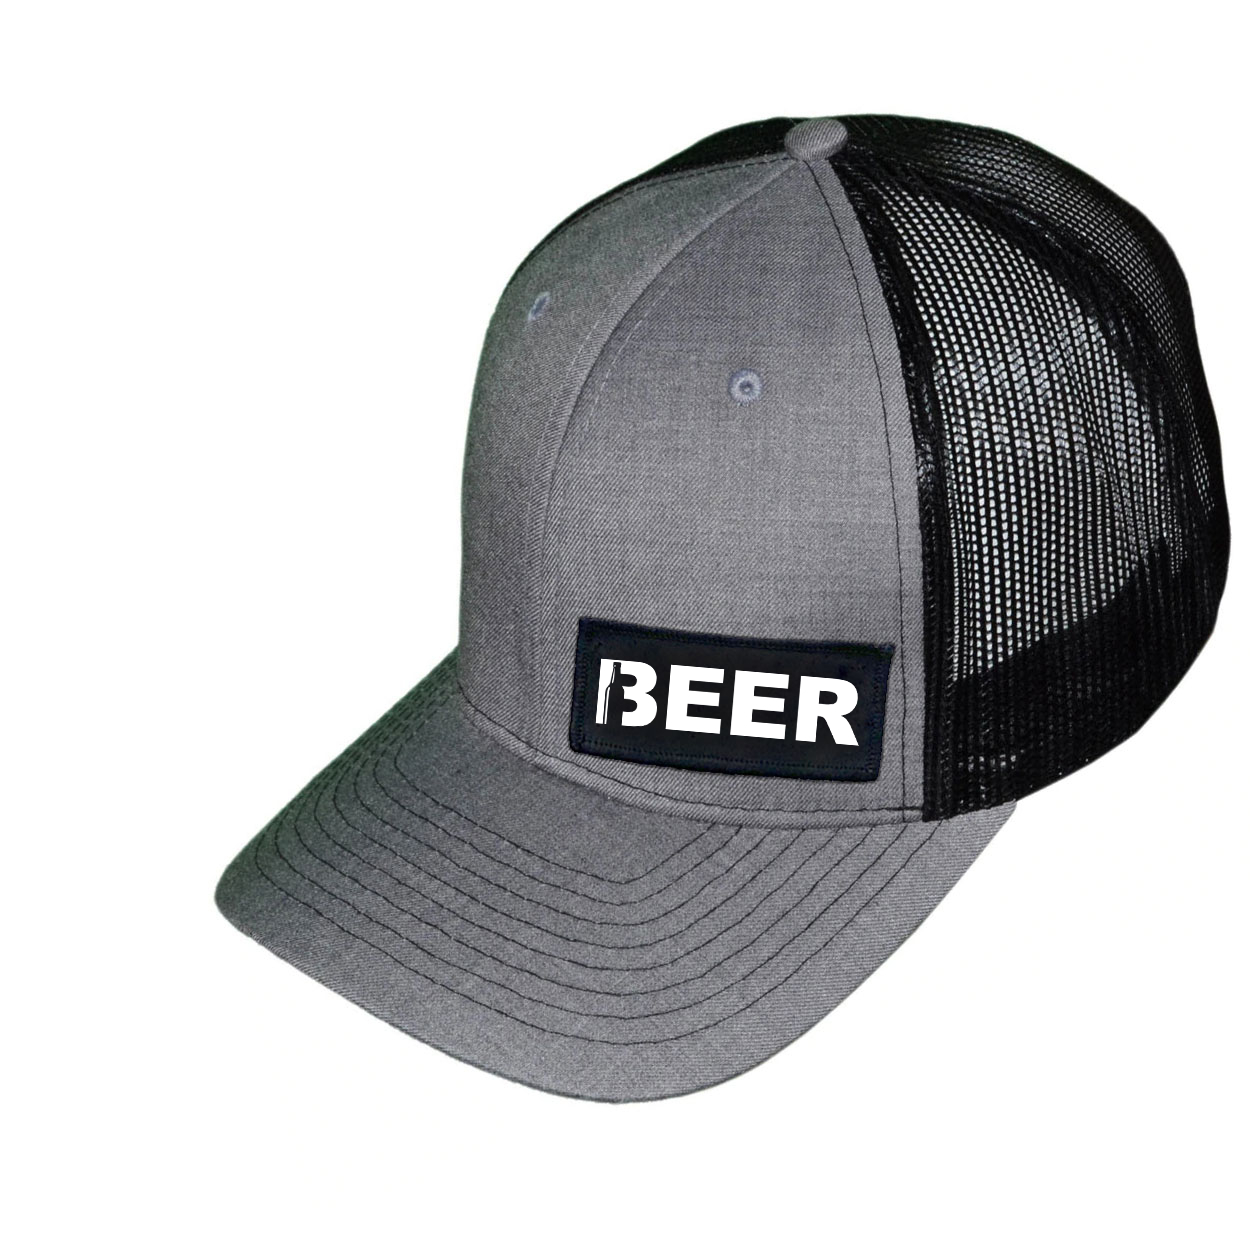 Beer Bottle Logo Night Out Woven Patch Snapback Trucker Hat Heather Gray/Black (White Logo)